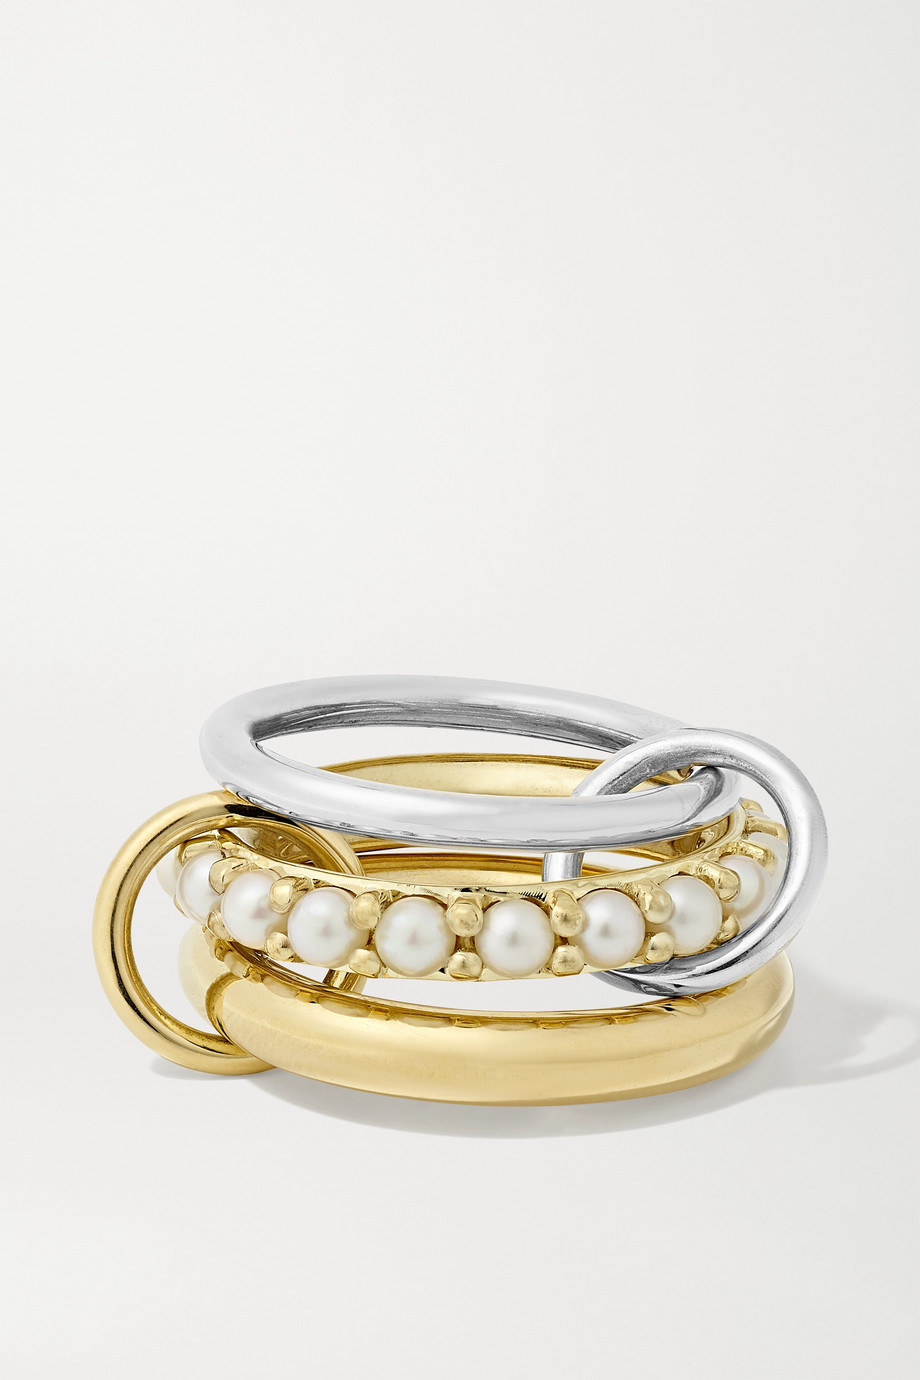 Spinelli Kilcollin Set of three 18-karat gold, sterling silver and pearl rings